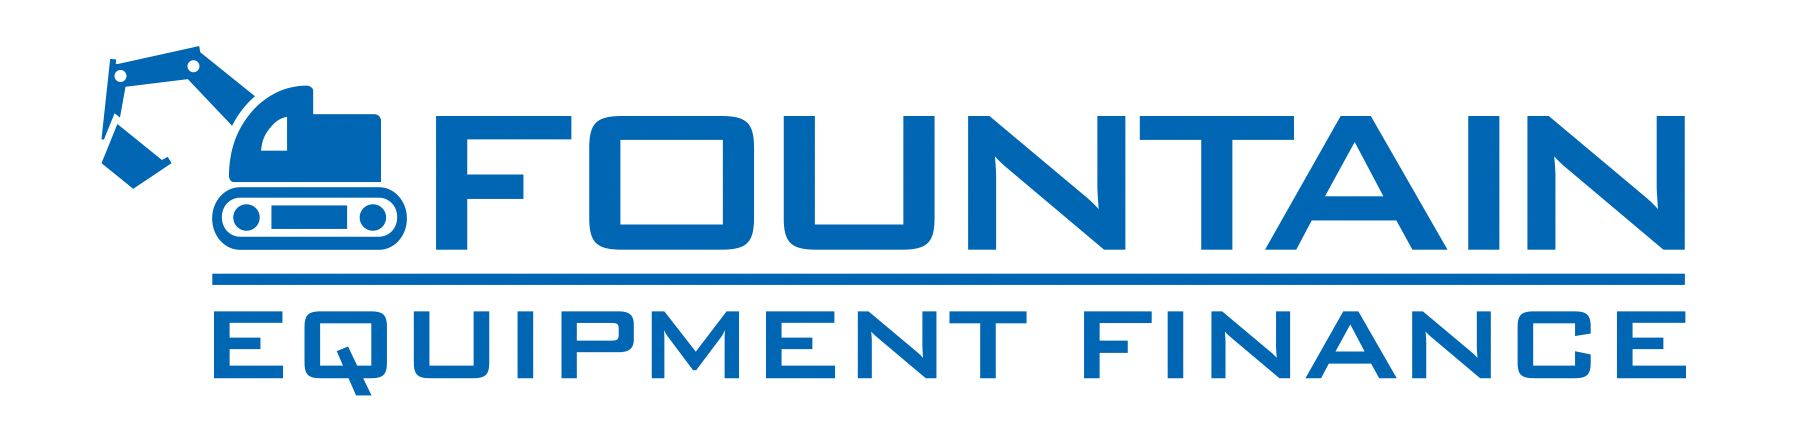 Fountain Equipment Finance